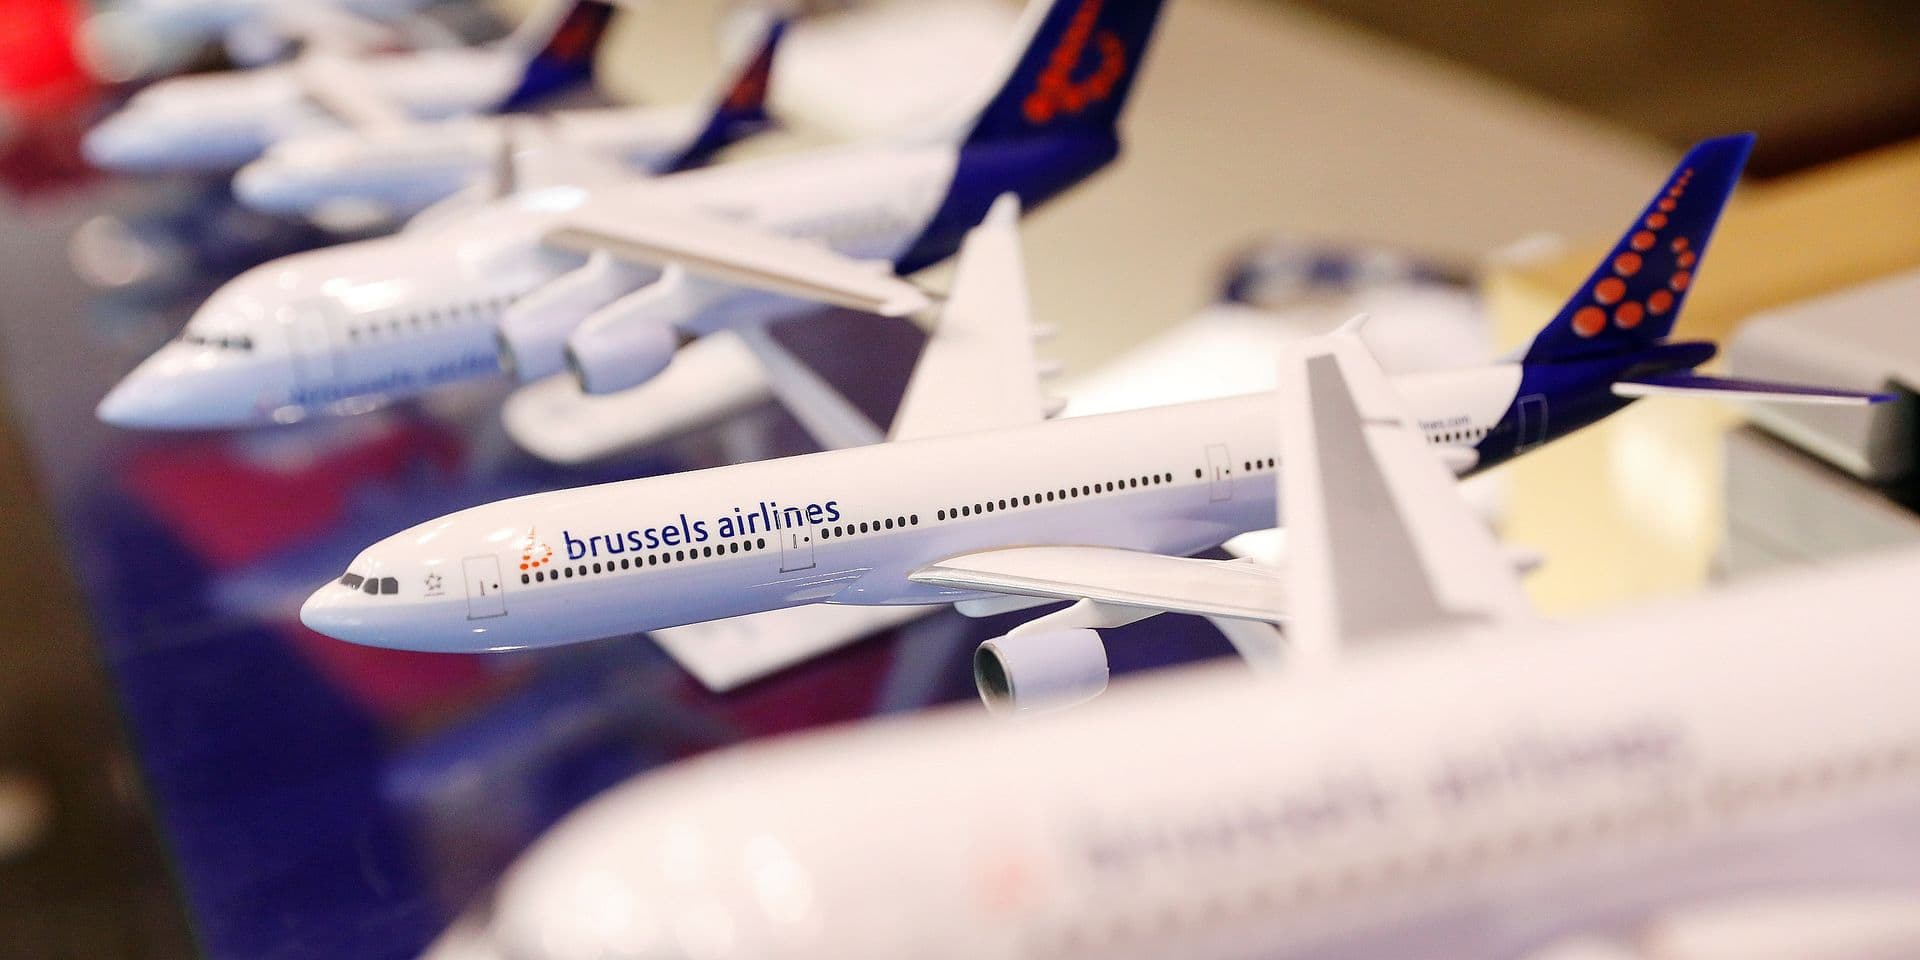 Illustration picture shows the model of an aircraft during the negotiations concerning the integration of Brussels Airlines in the Eurowings Group, division of Lufthansa, Monday 09 July 2018, at Brussels airlines headquarters in Diegem. BELGA PHOTO THIERRY ROGE